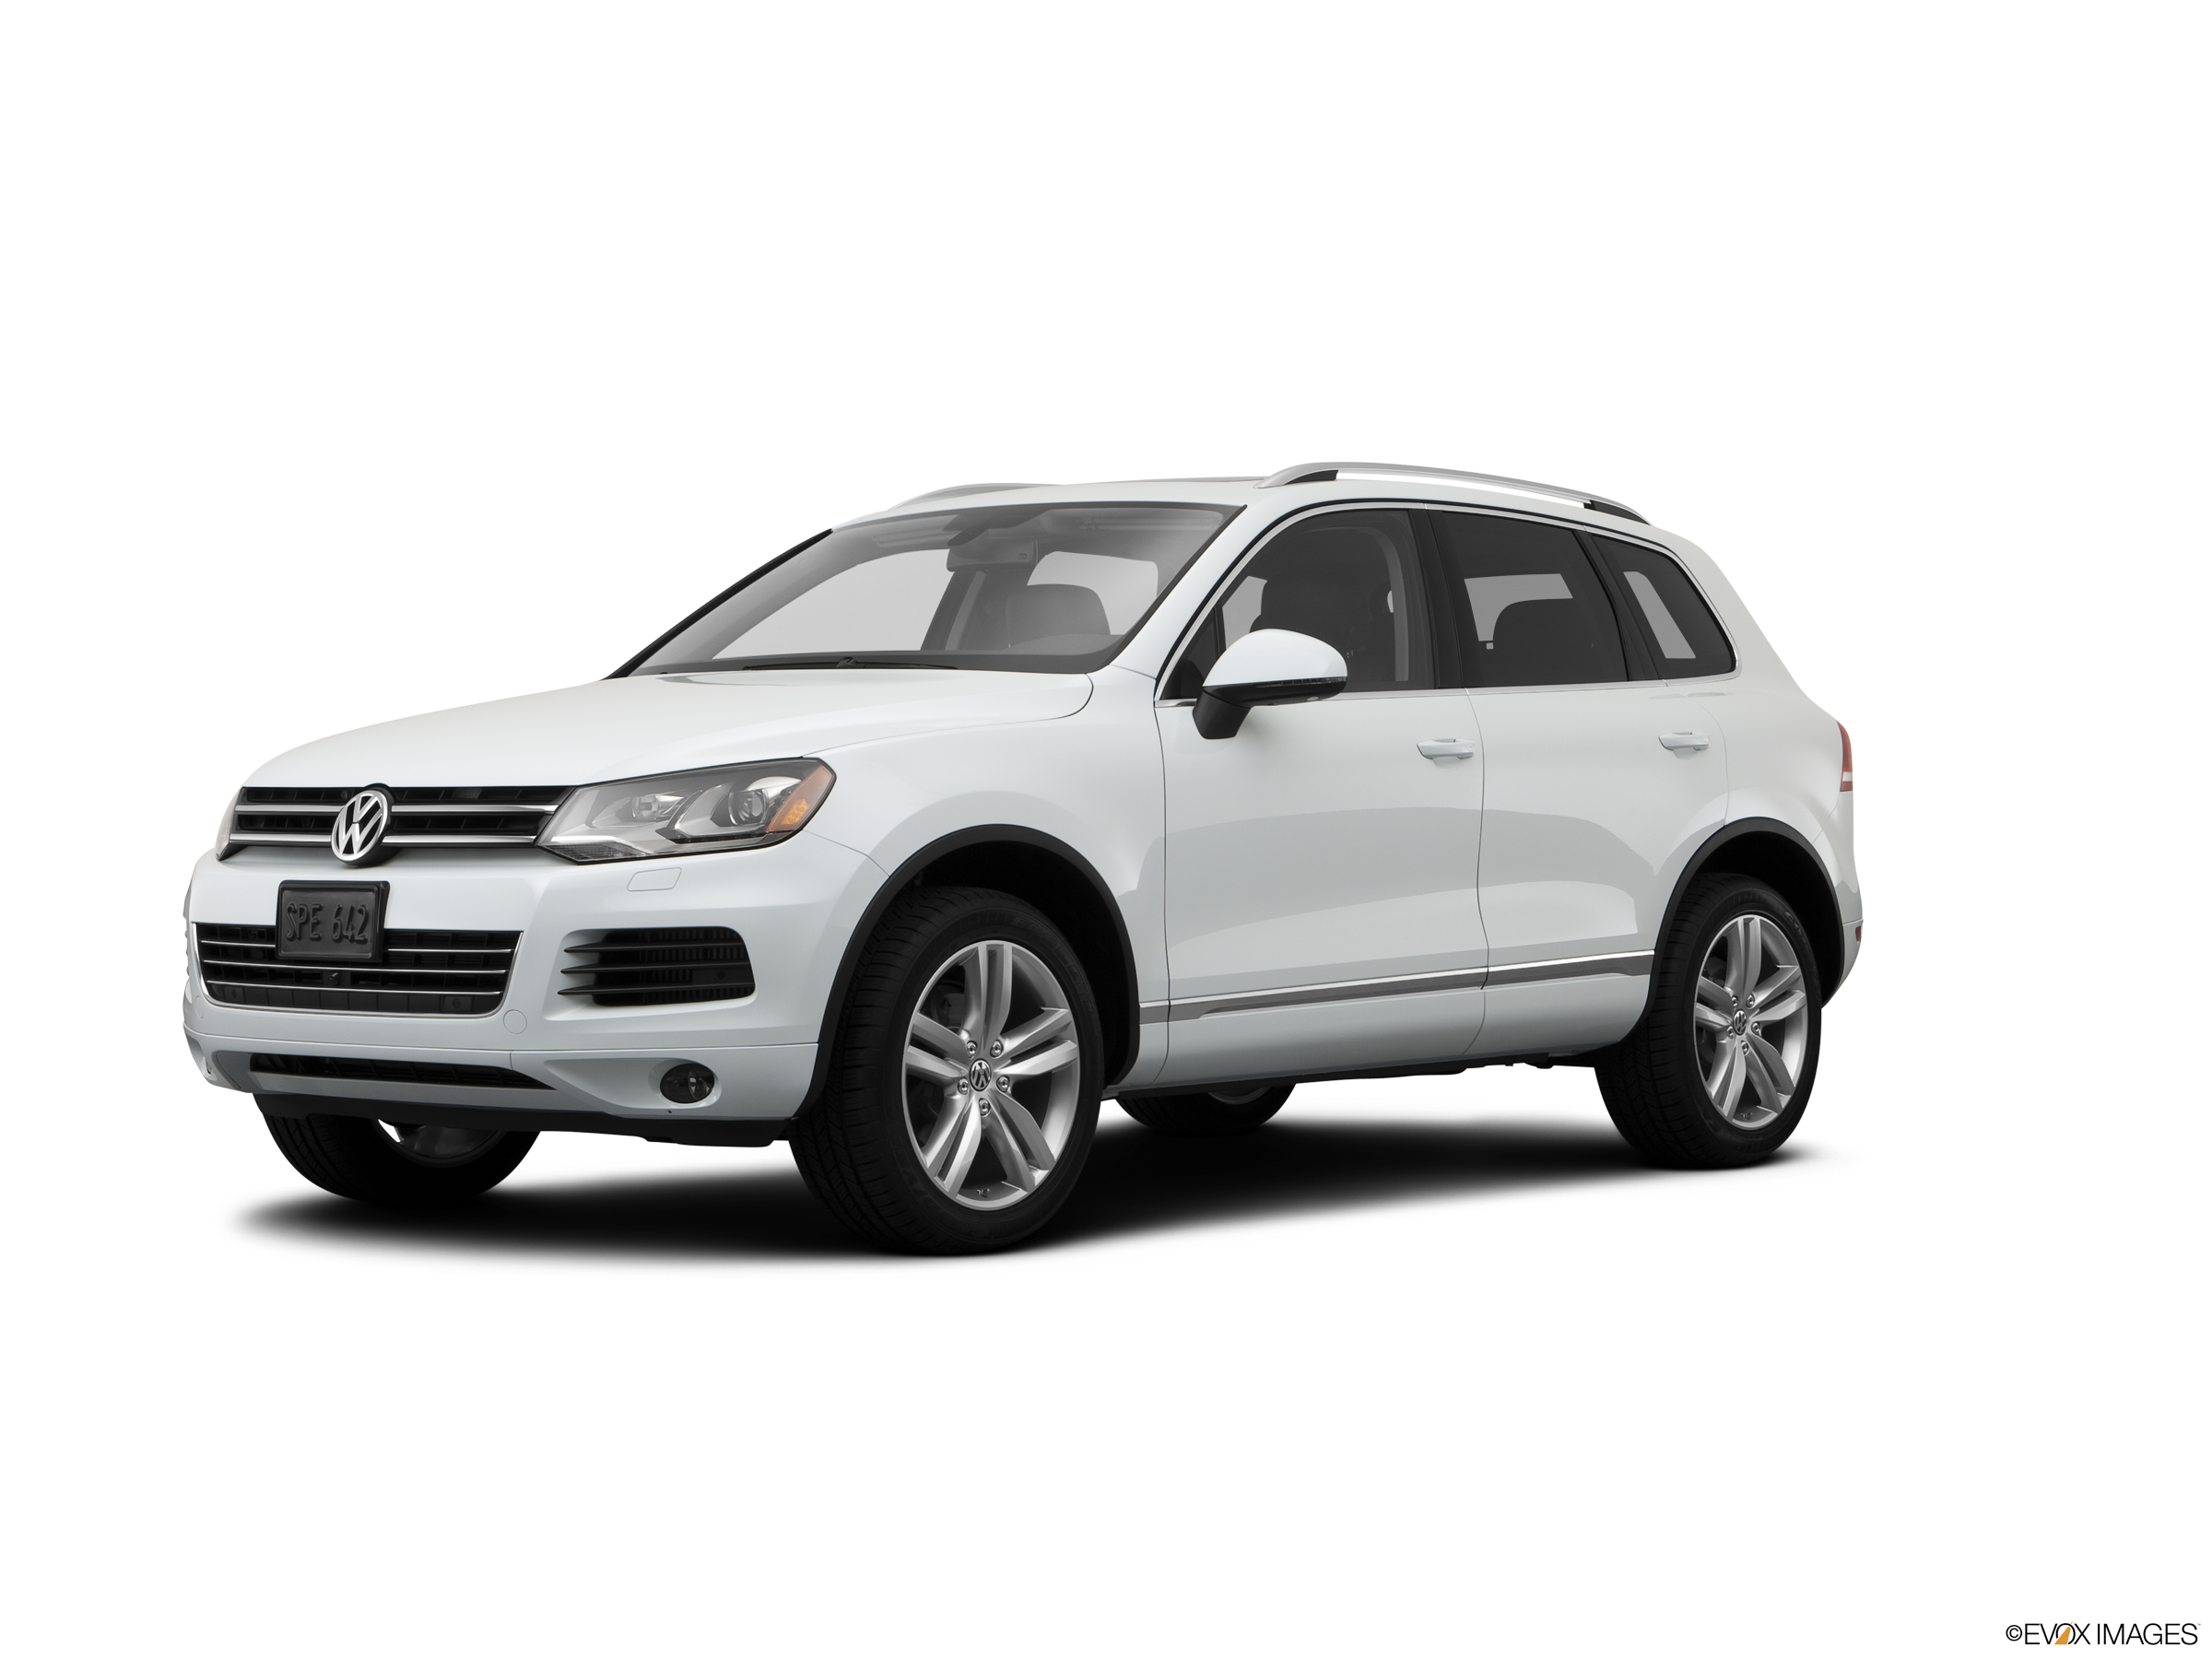 2014 Volkswagen Touareg Values Cars For Sale Kelley Blue Book